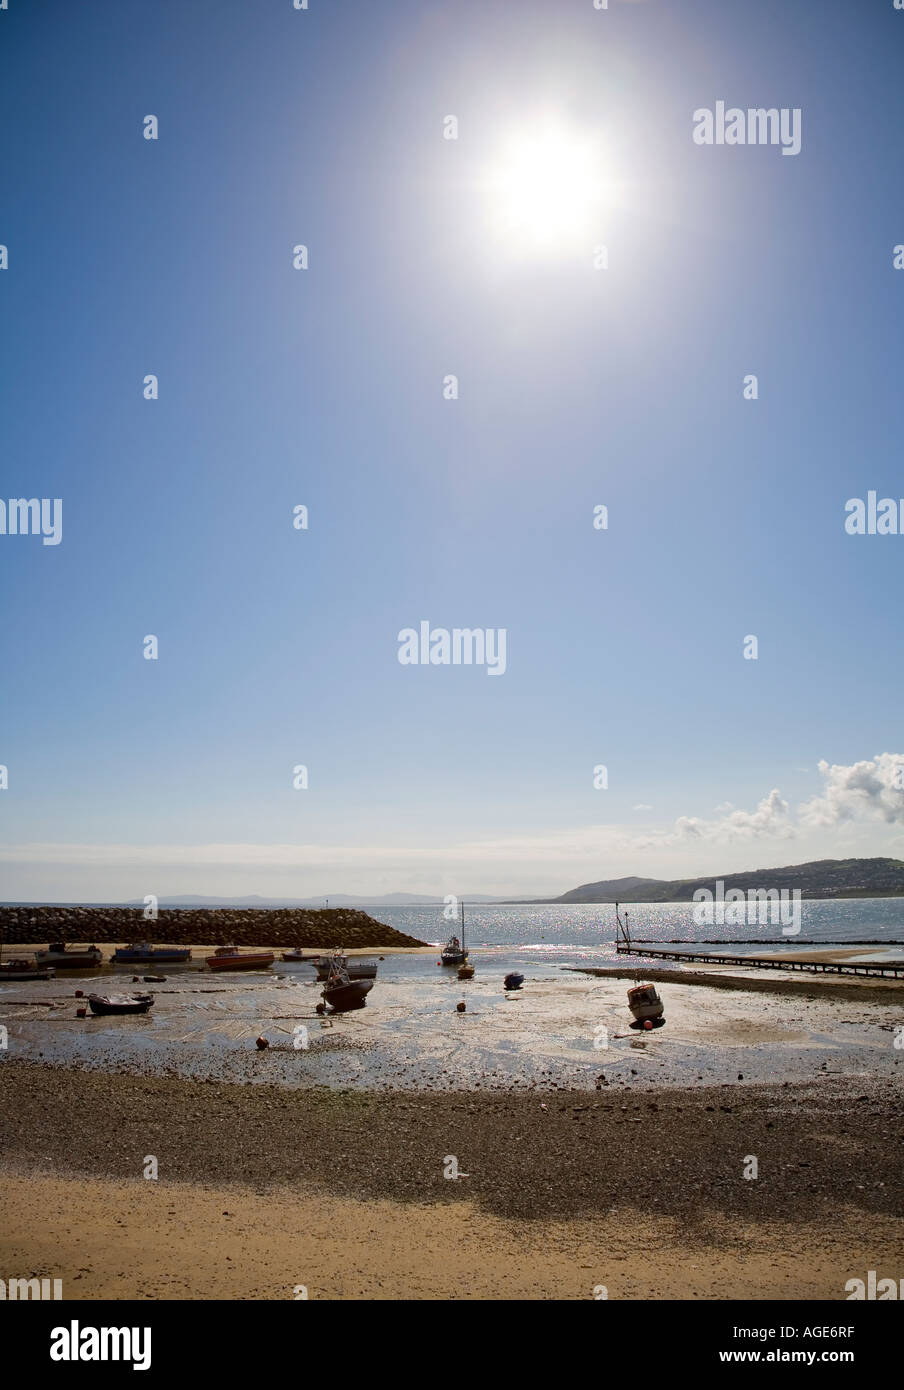 Boats on the beach at low tide Rhos on Sea Conwy Wales UK - Stock Image